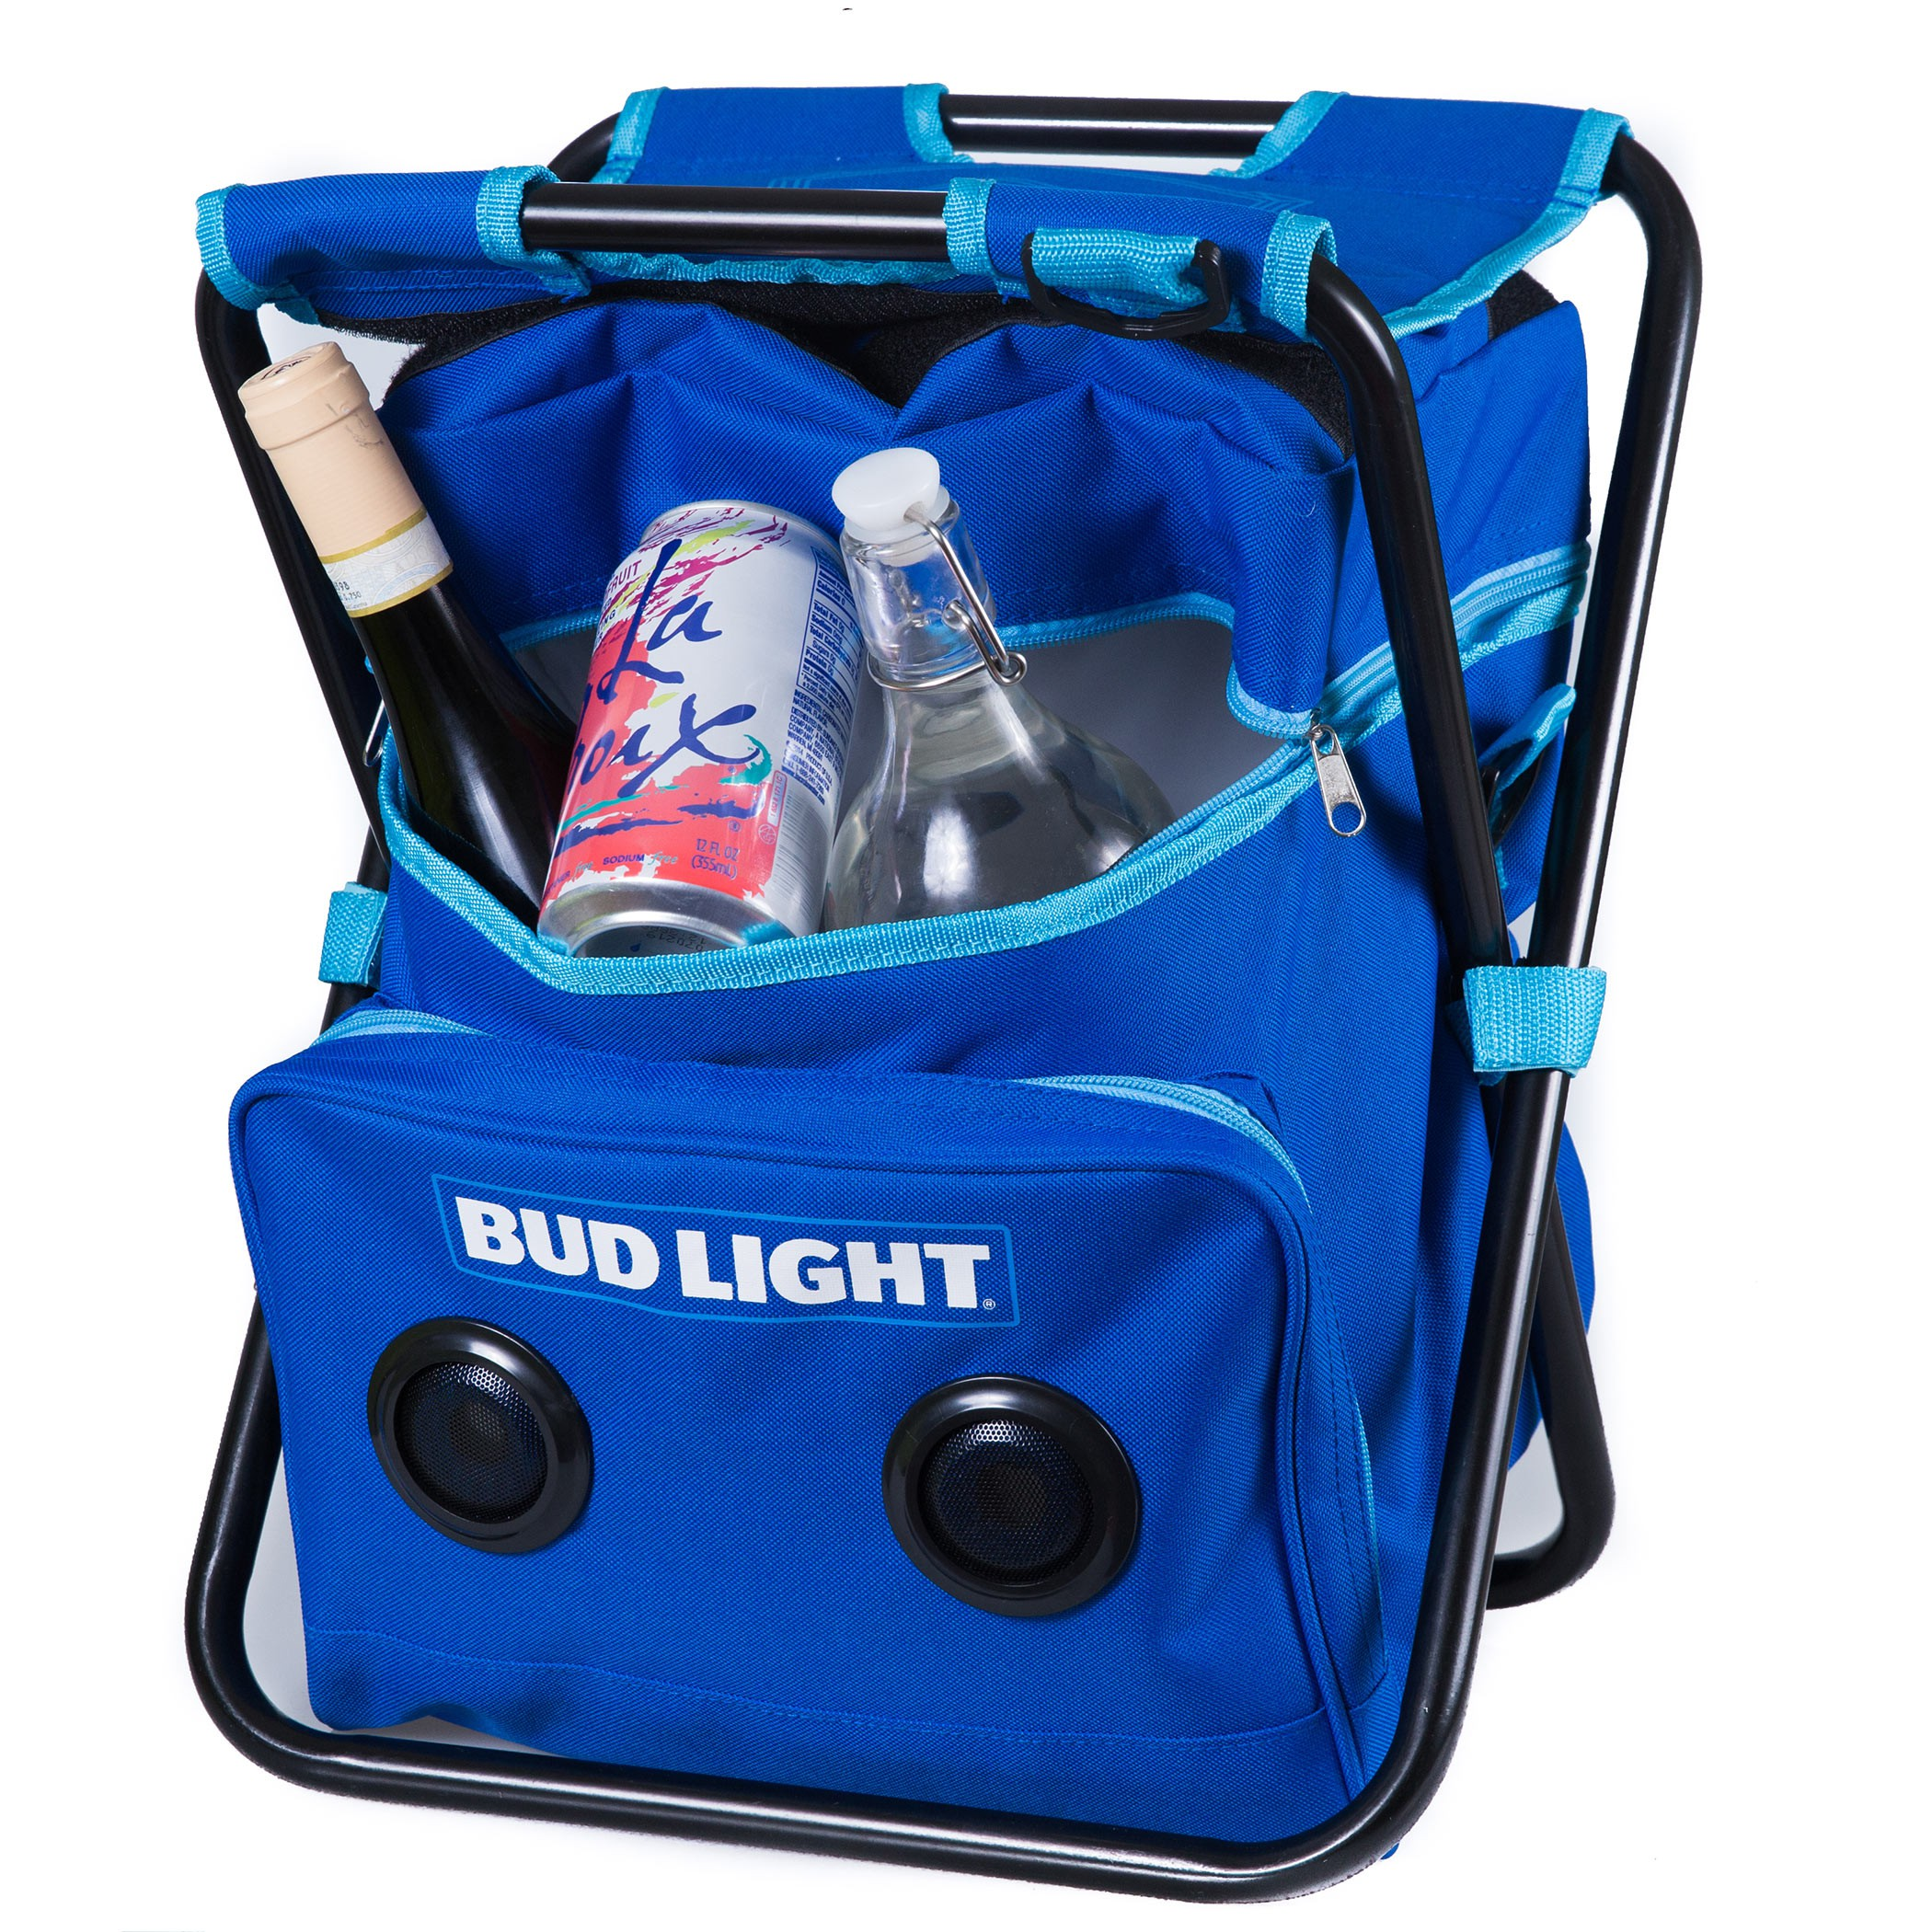 Fine Bud Light Cooler Folding Chair With Built In Speakers Theyellowbook Wood Chair Design Ideas Theyellowbookinfo